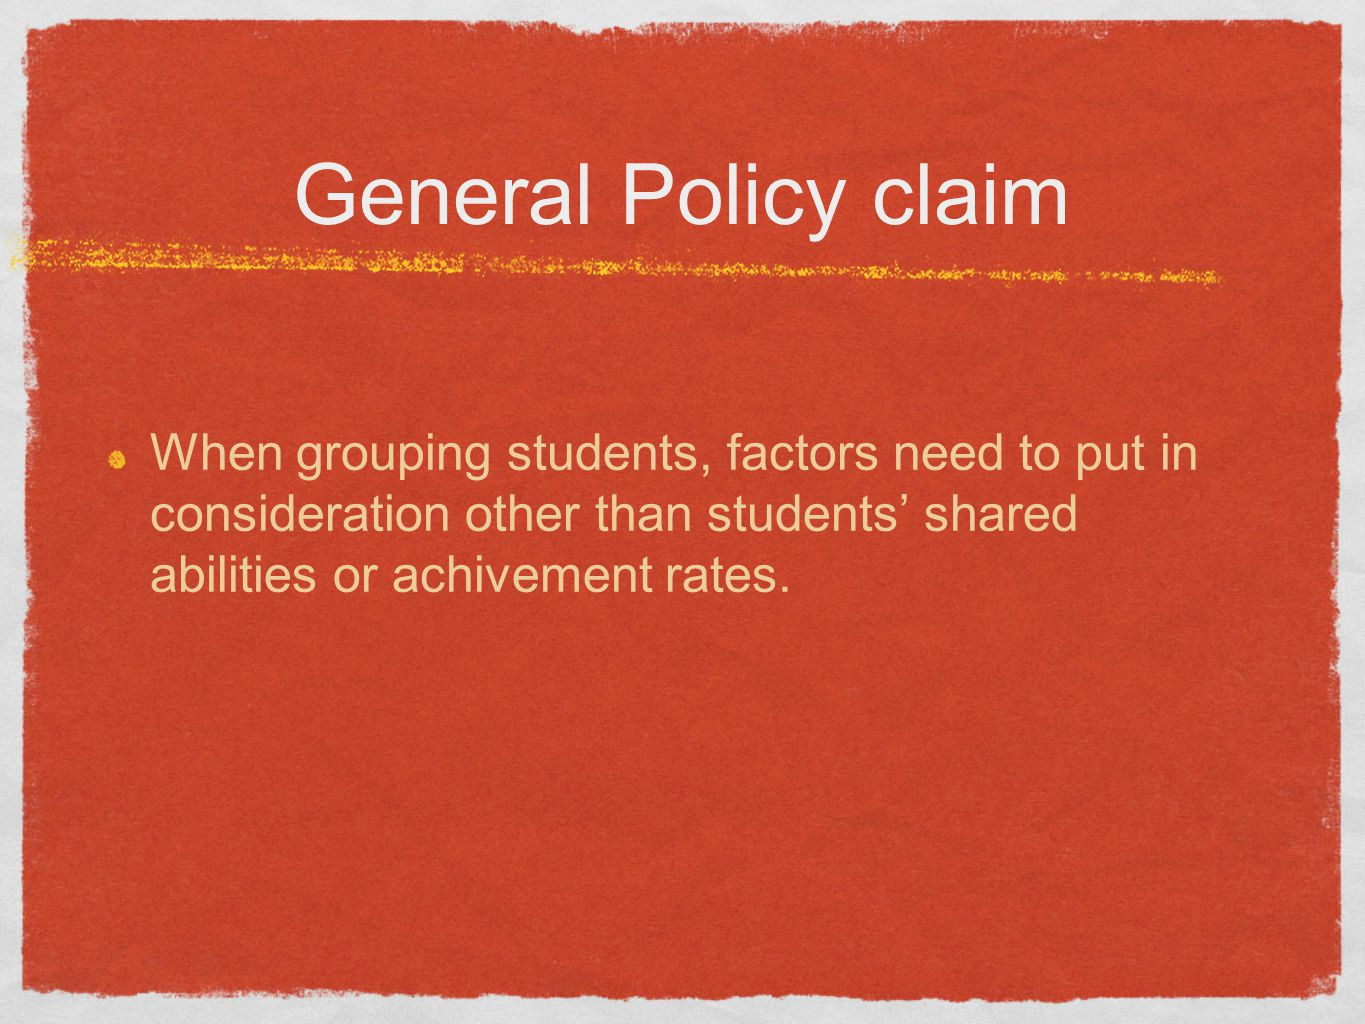 General Policy claim When grouping students, factors need to put in consideration other than students' shared abilities or achivement rates.